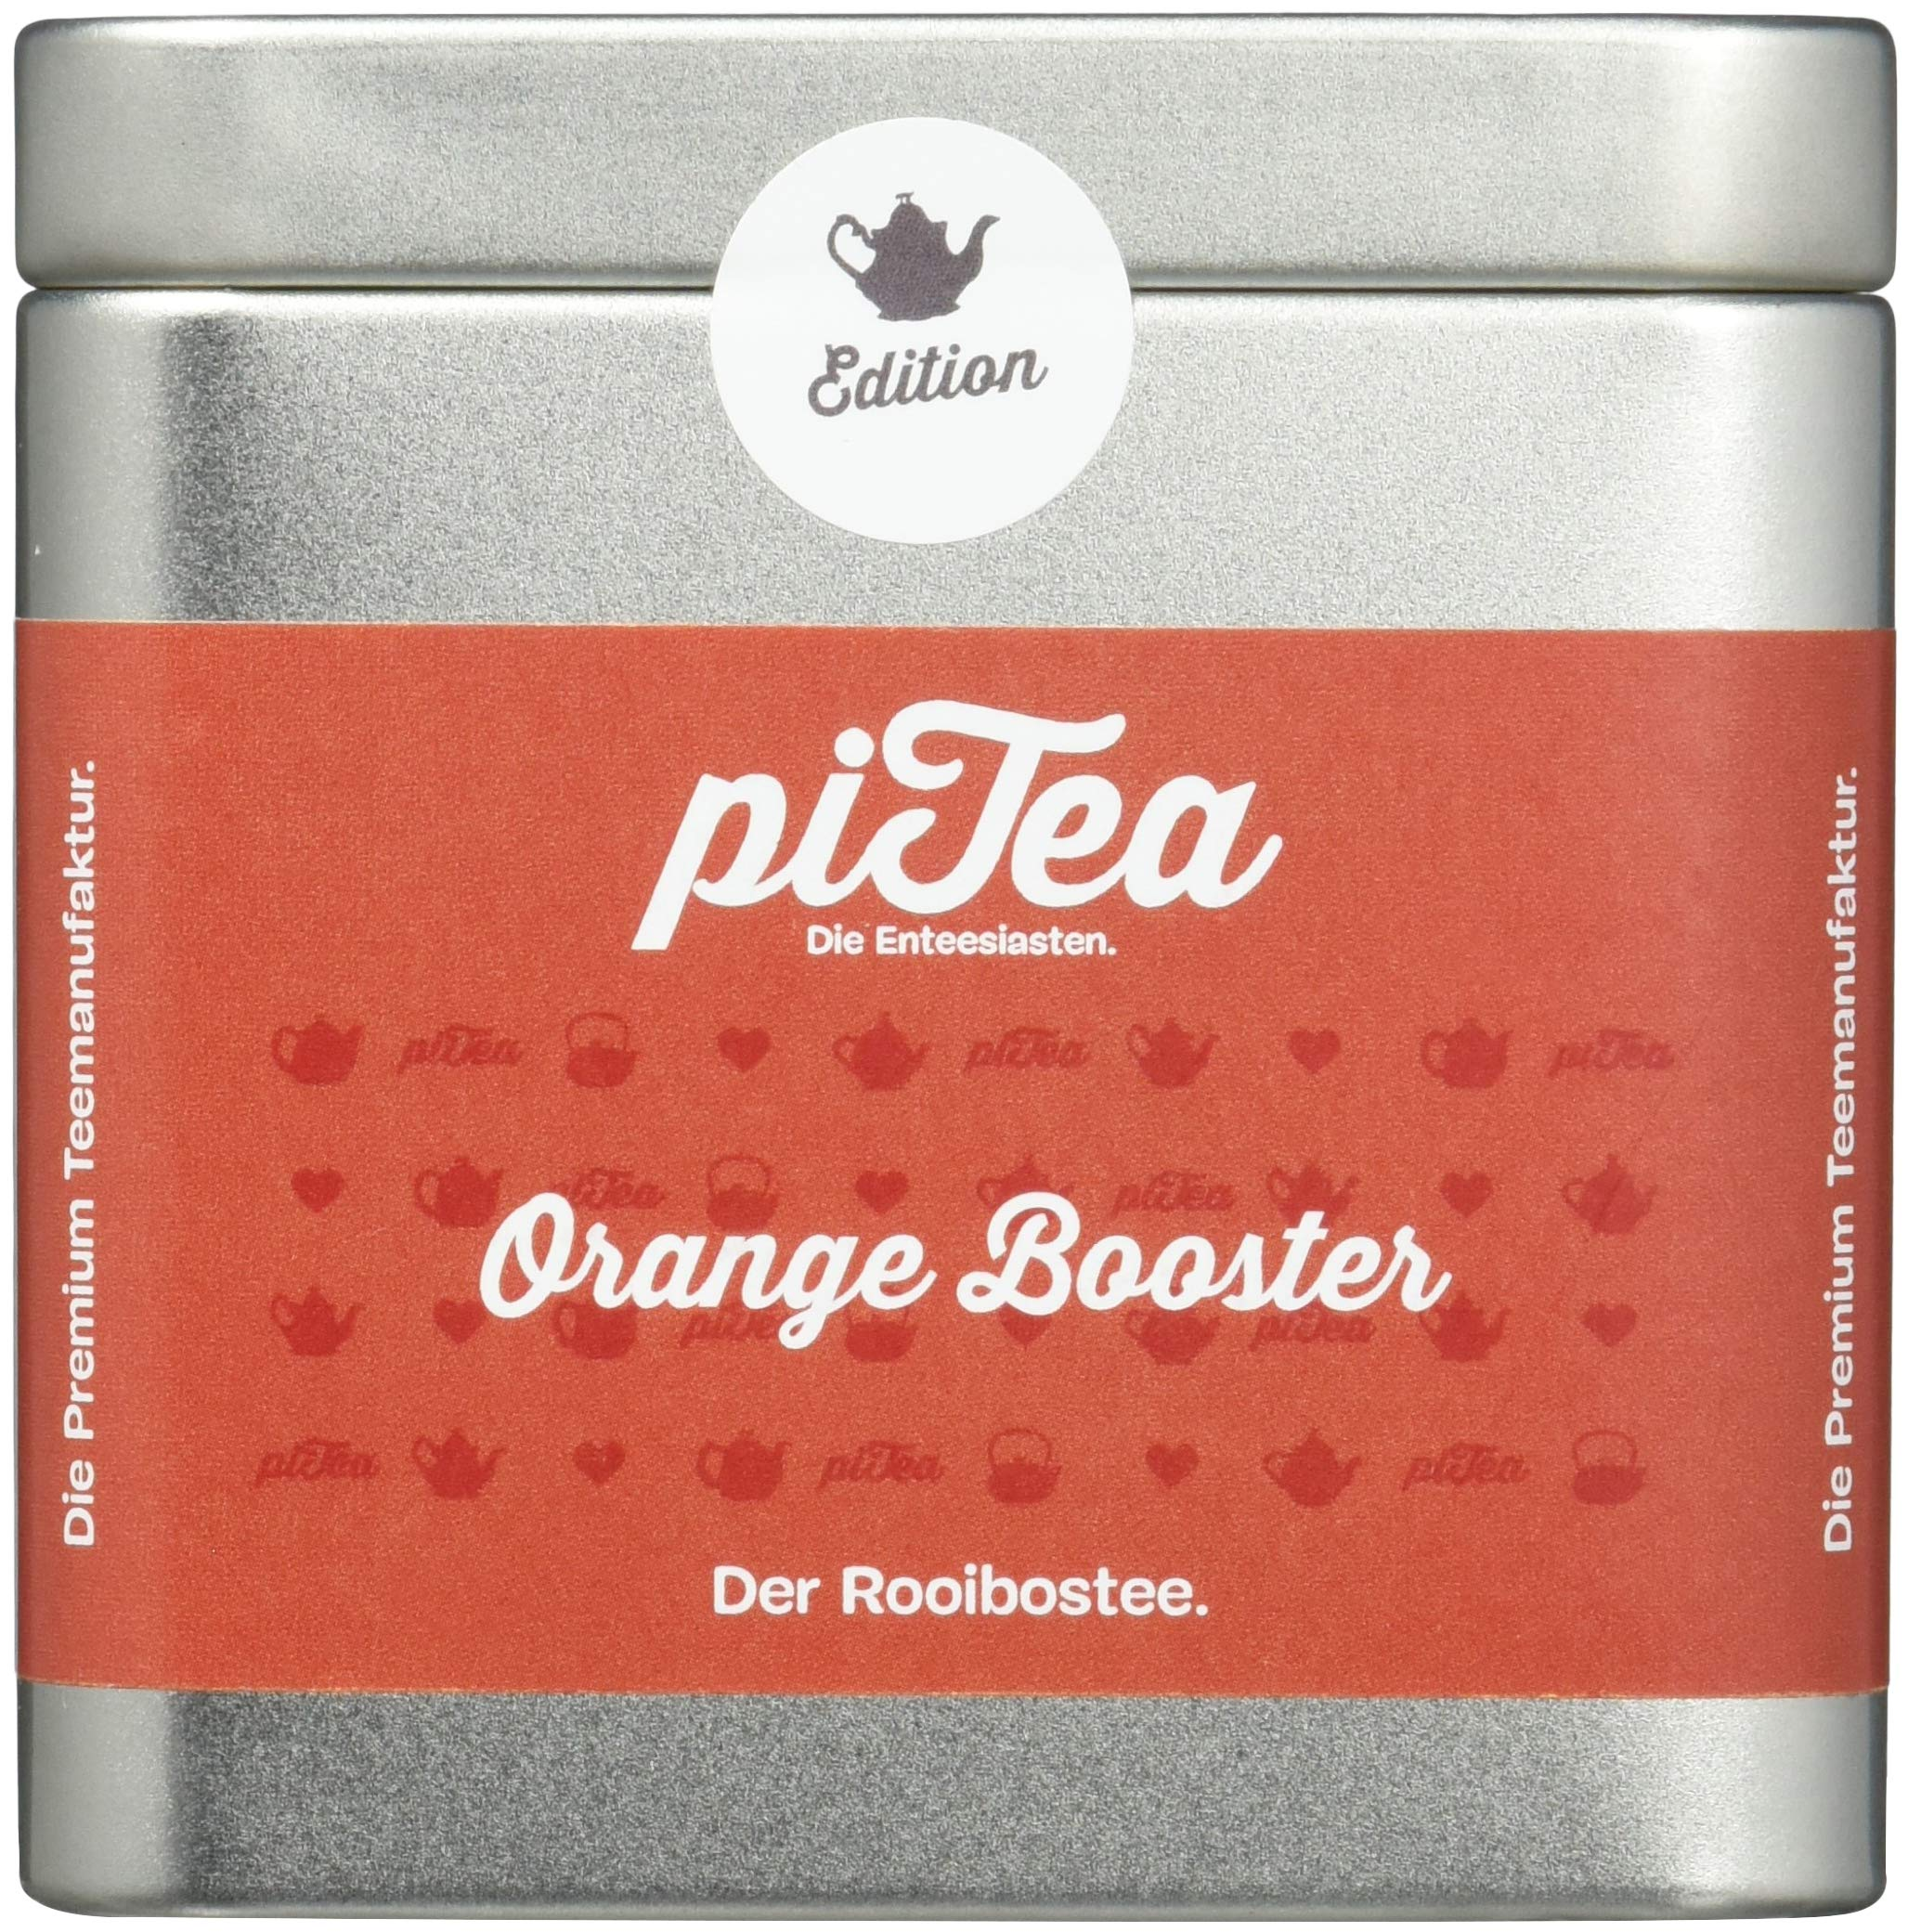 Pi-Tea-Orange-Booster-Dose-Rooibostee-Teestation-natrlich-und-vegan-2er-Pack-2-x-75-g